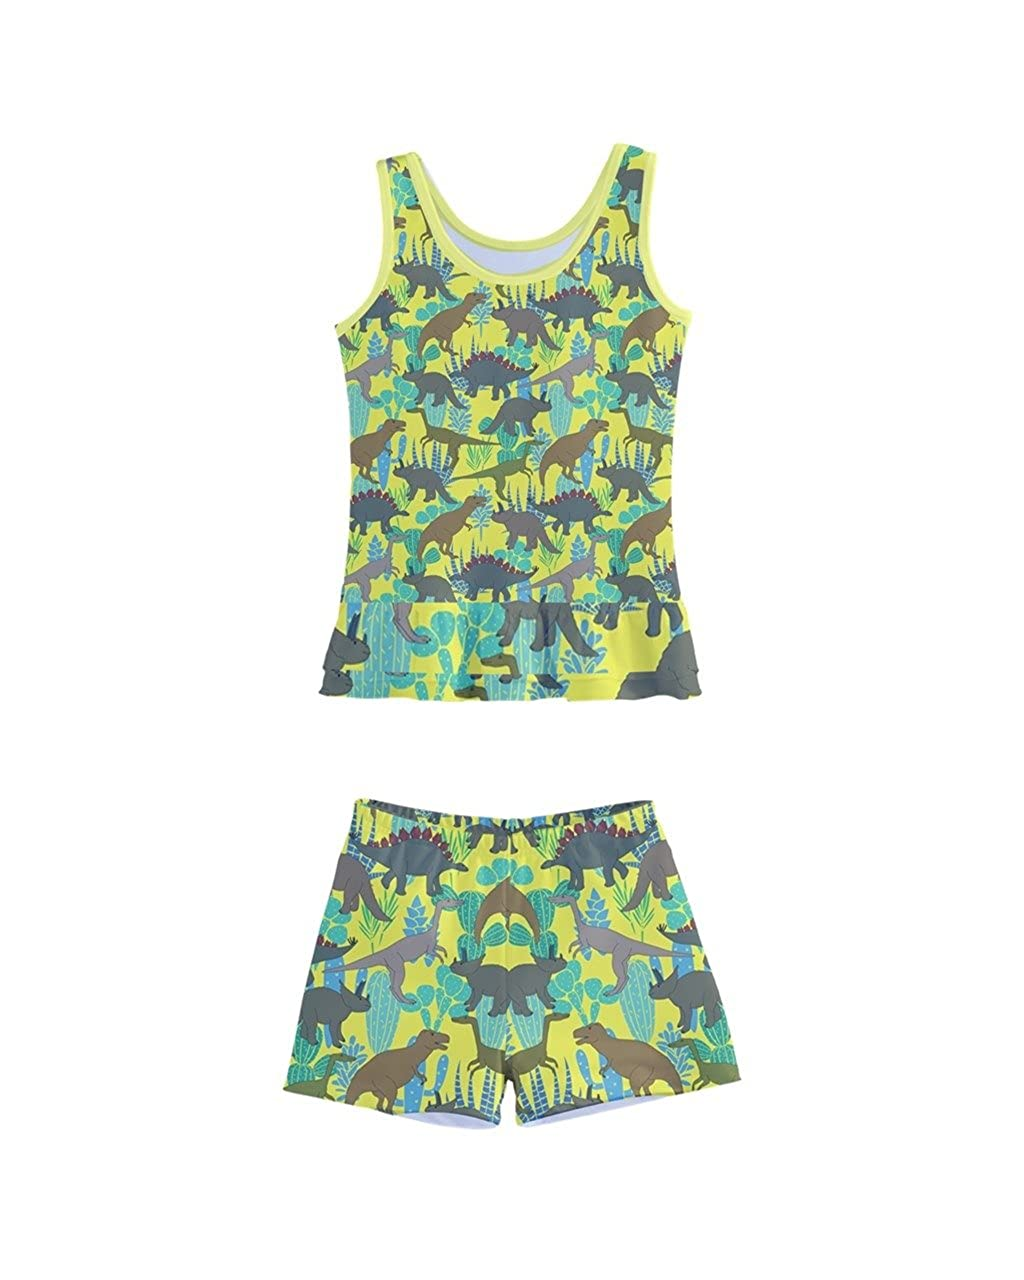 3f60559b2d010 Amazon.com: PattyCandy Little Girls Boyleg Swimsuit Set Dinosaur Style GRR  Patterns Little Kids Beach Wear, Size 2-16: Clothing